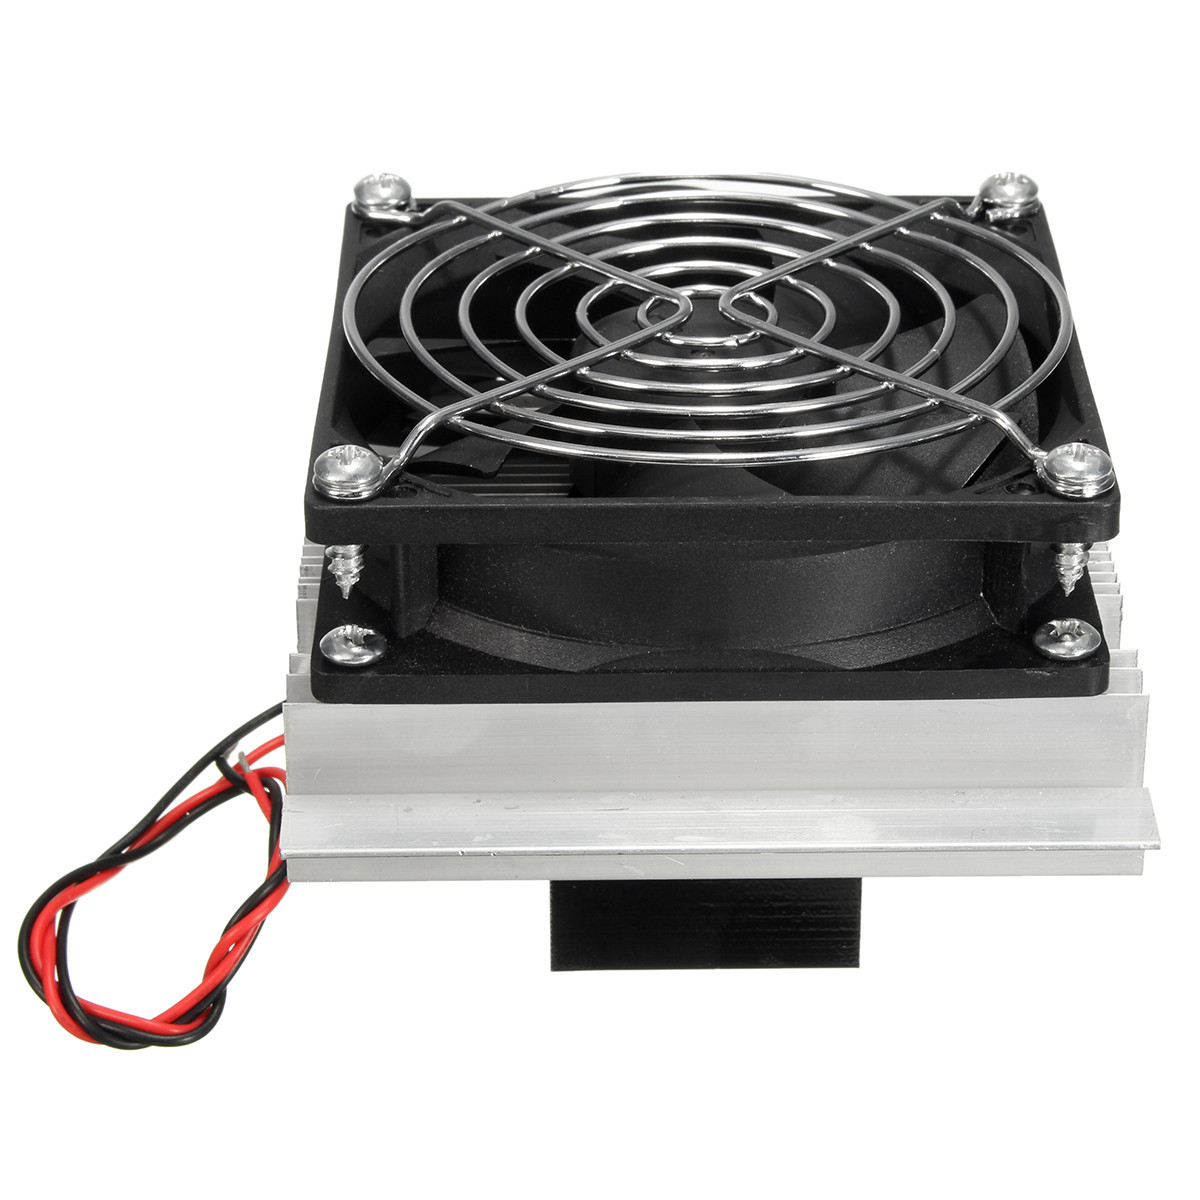 Home furniture amp diy gt heating cooling amp air gt space heaters - 1200 Home Furniture Diy Heating Cooling Air Air Conditioning B71e14 1200